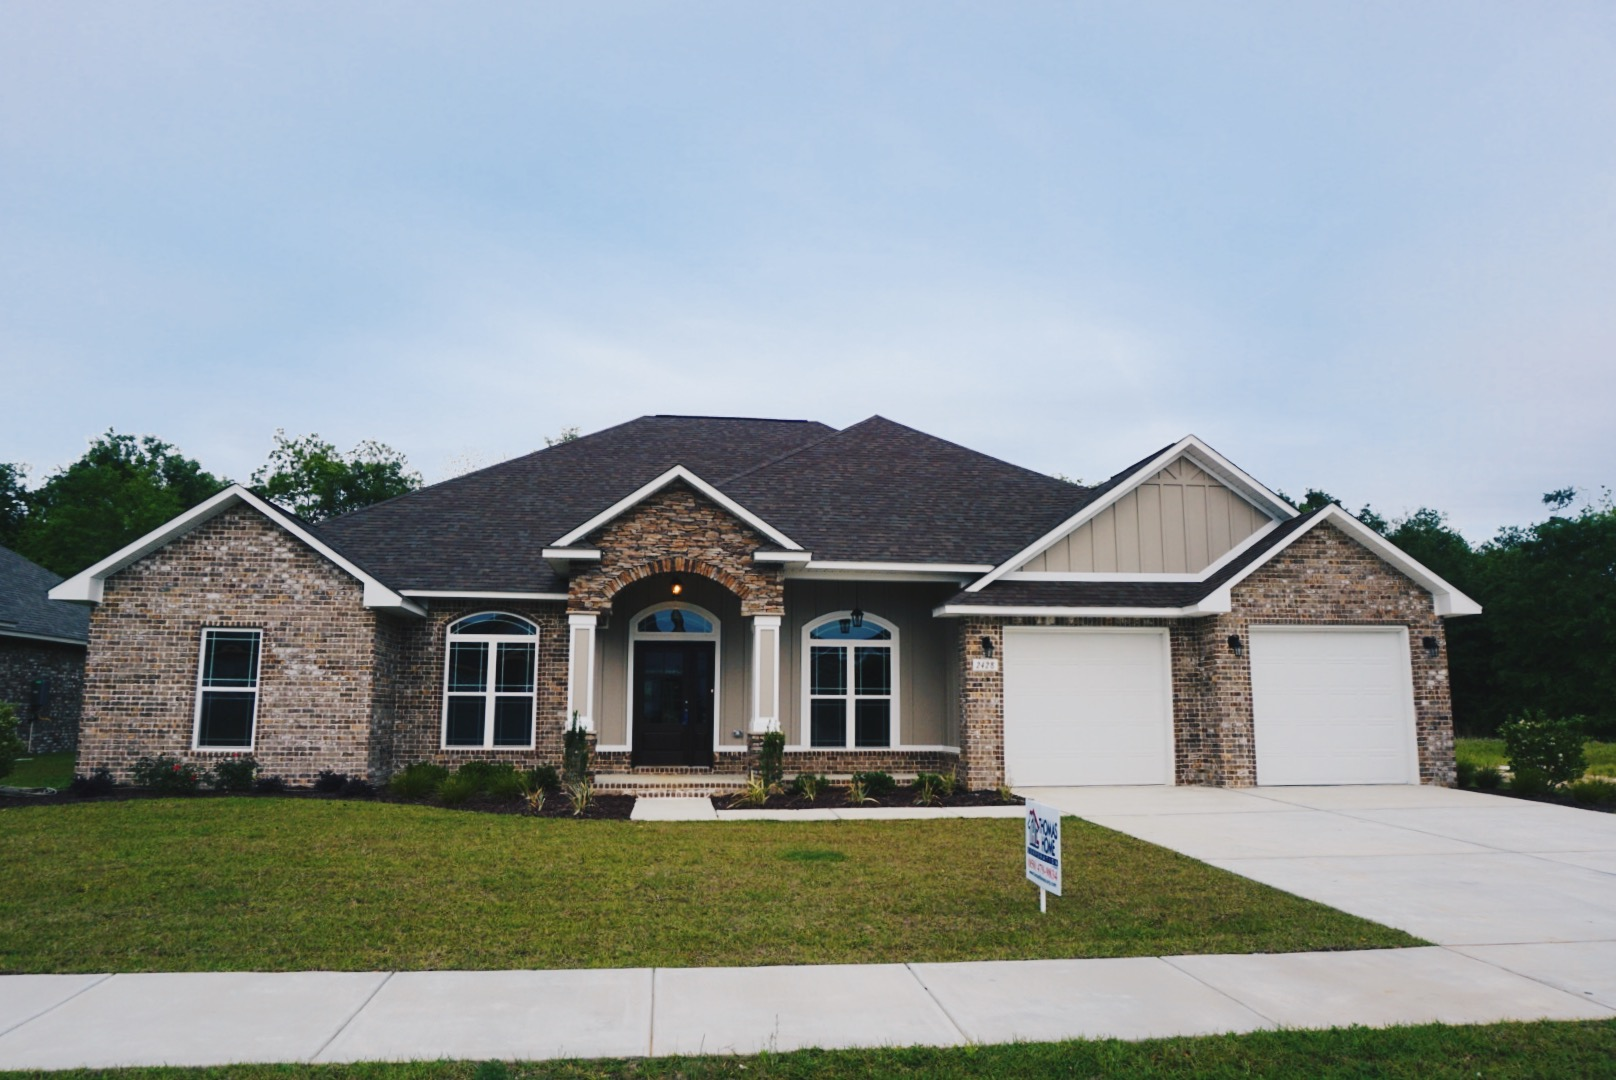 2428 Okatie Lane Lot 33D 3011 plan 4 bed/3 bath